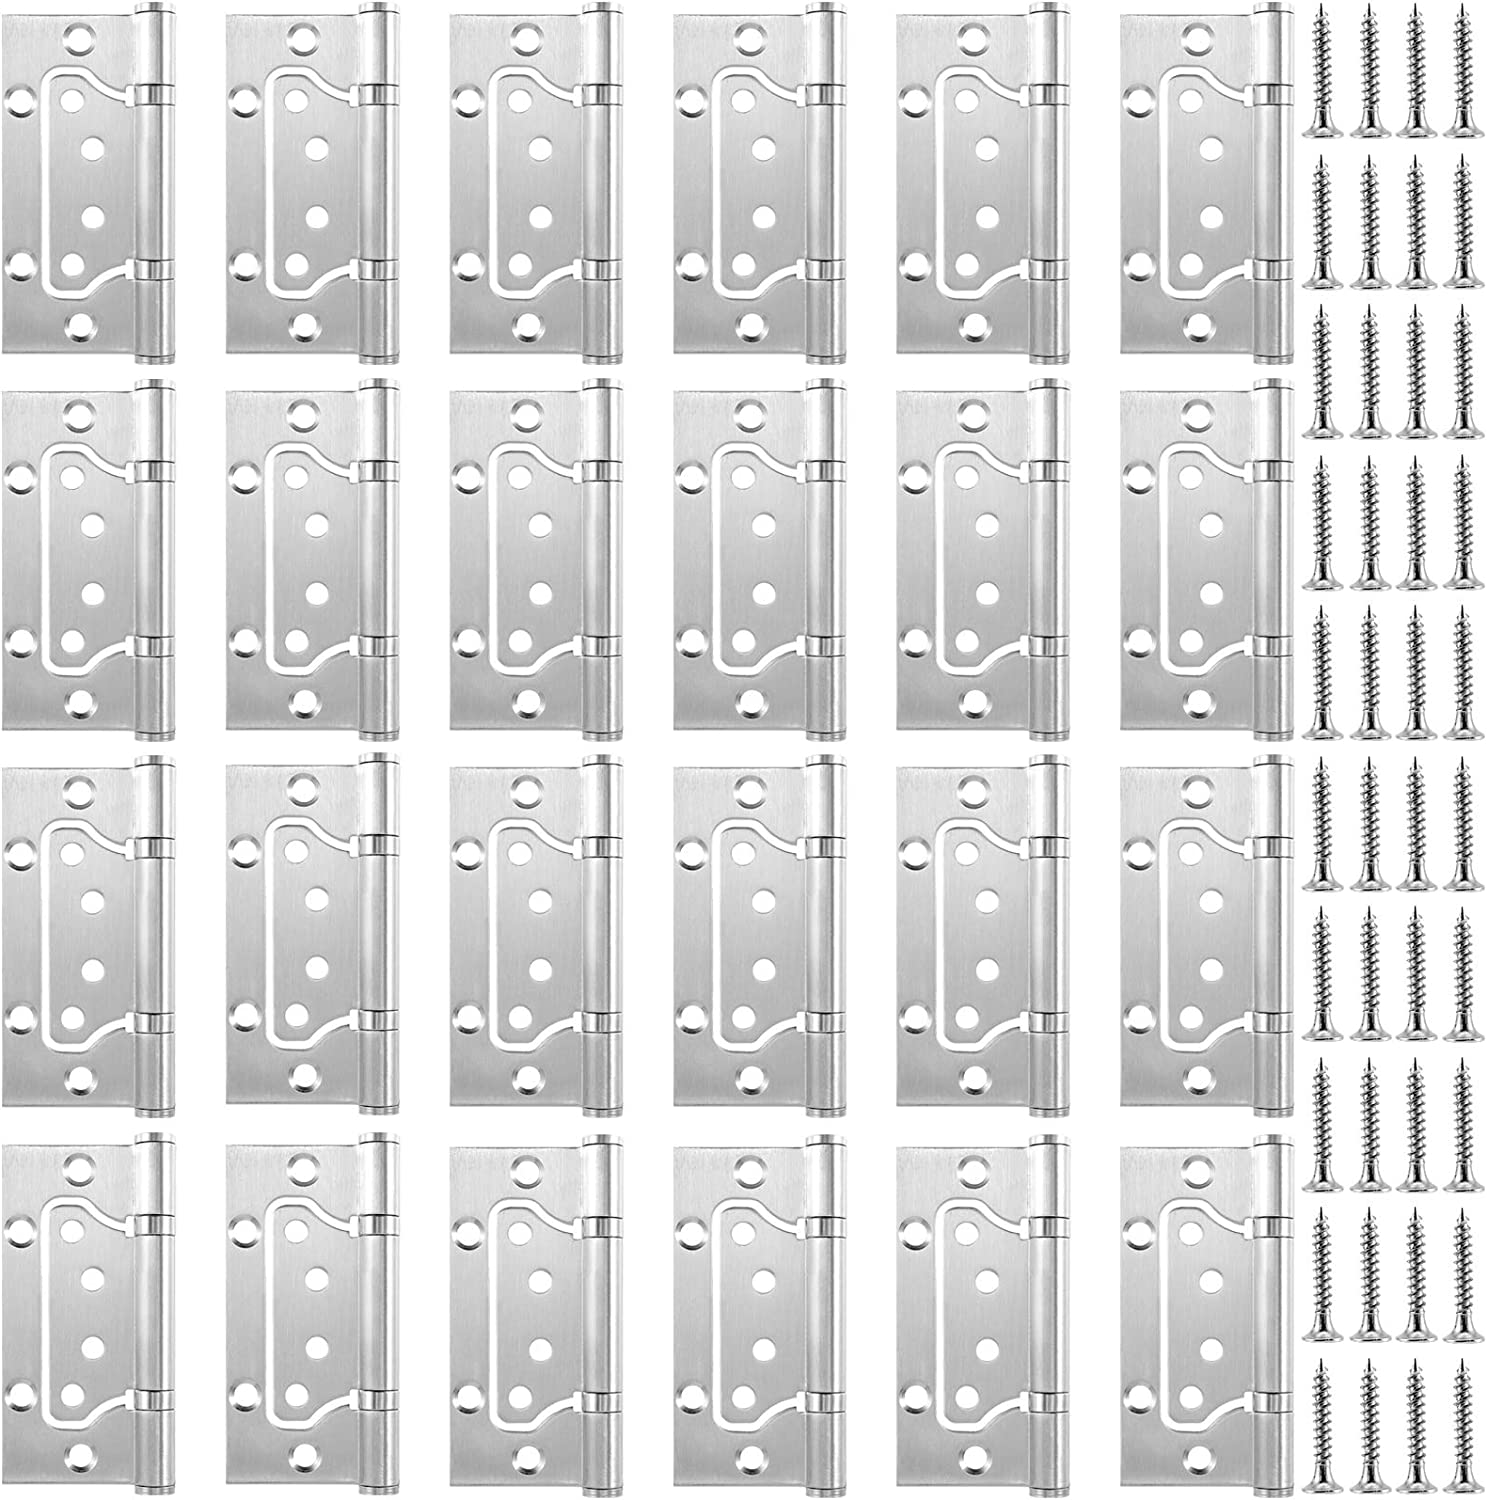 ZEONHAK 18 Pack 9 Pairs 4X 3 Inches Door Hinges, Brushed Surface Door Hinges, Stainless Steel Door Hinges with Mounting Screws, Silver